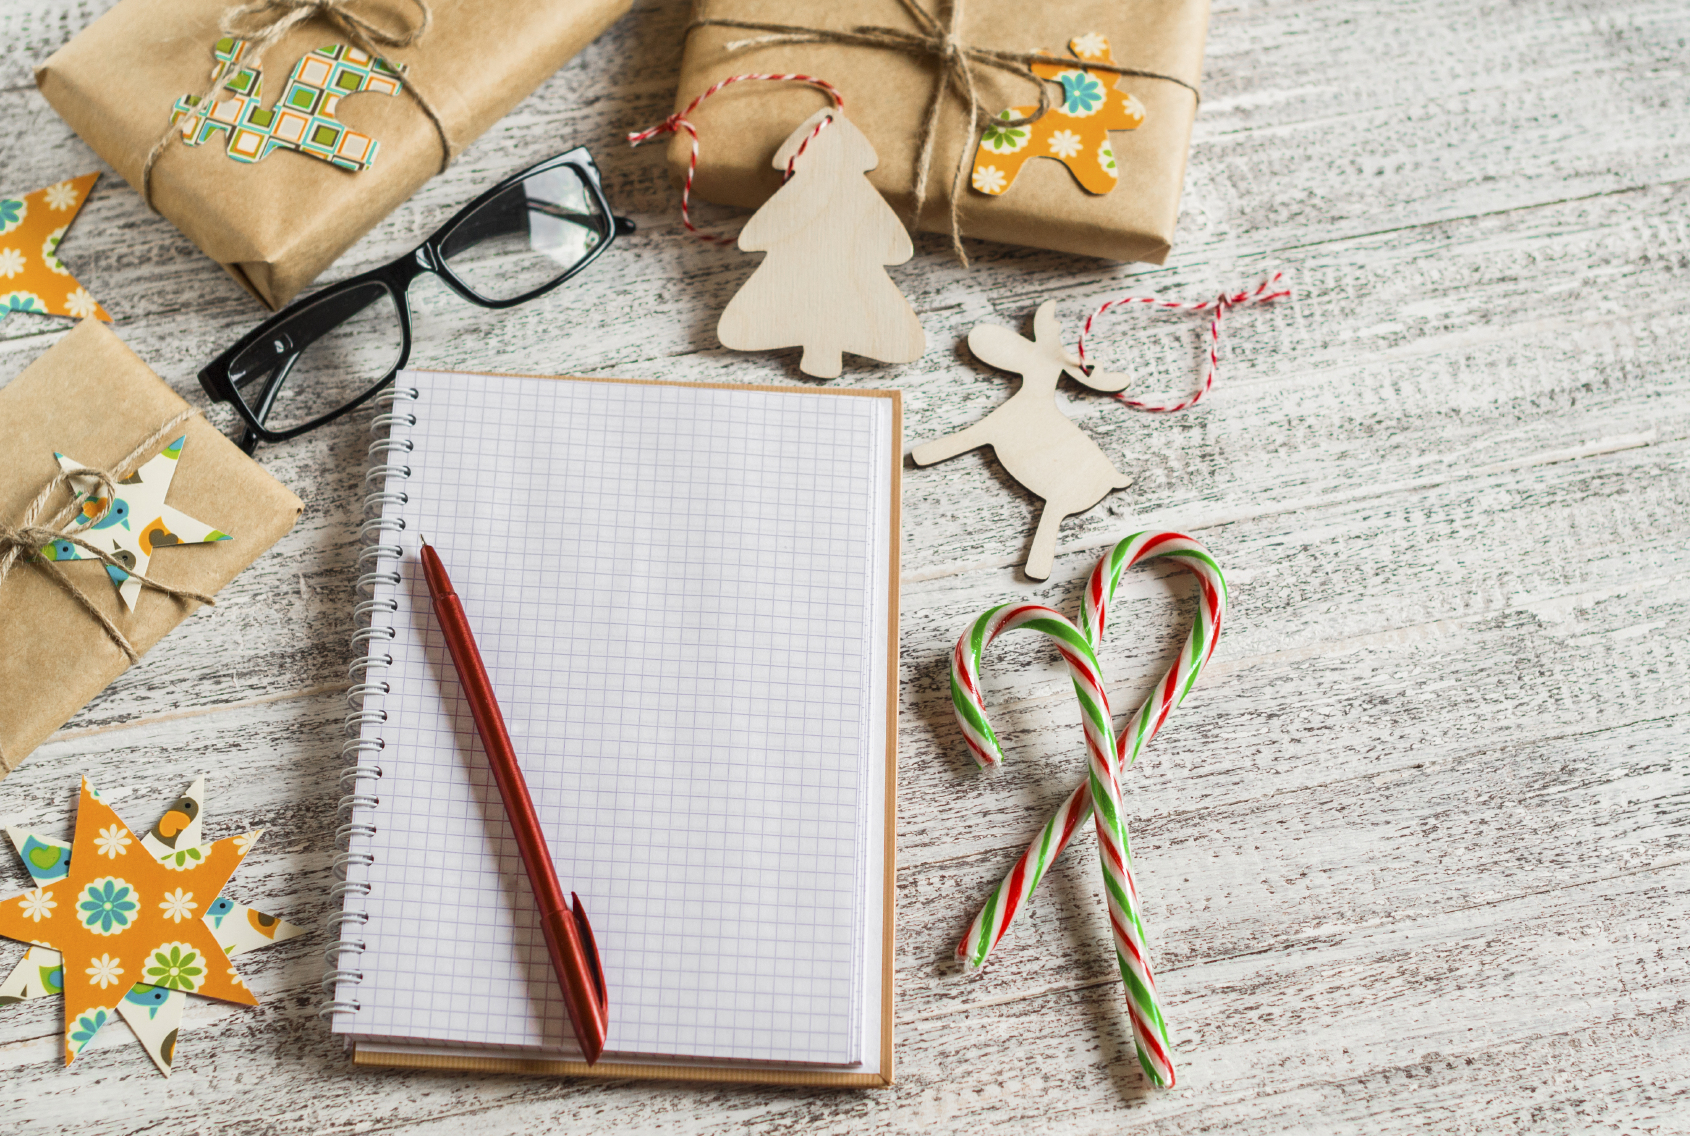 How to motivate employees during the holidays